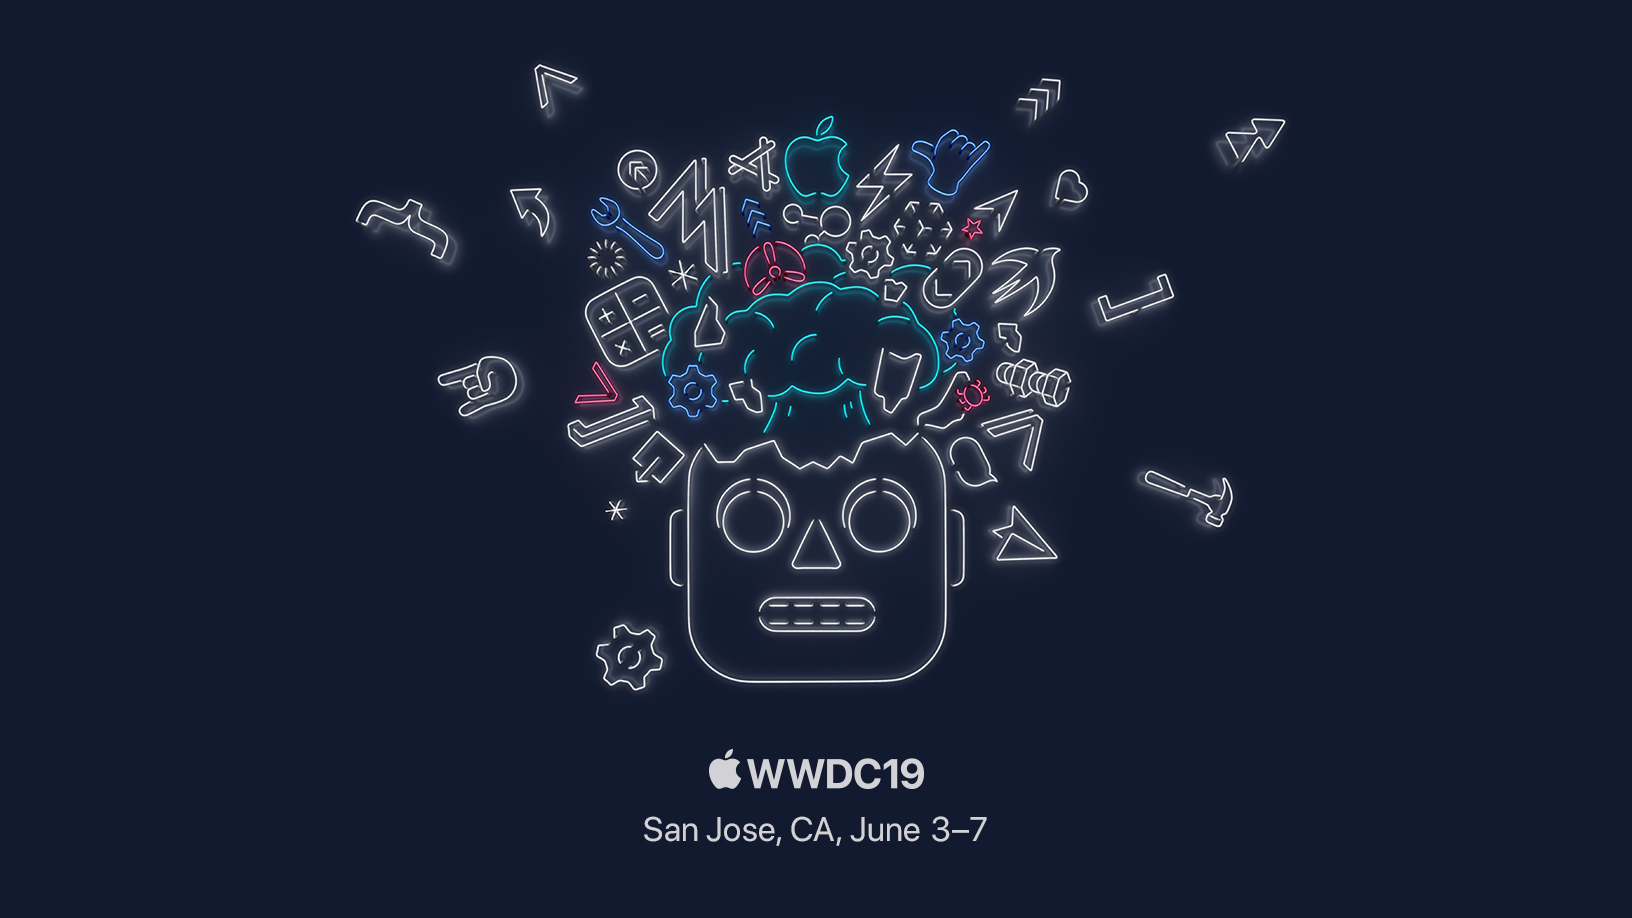 The Apple WWDC 2019 splash graphic